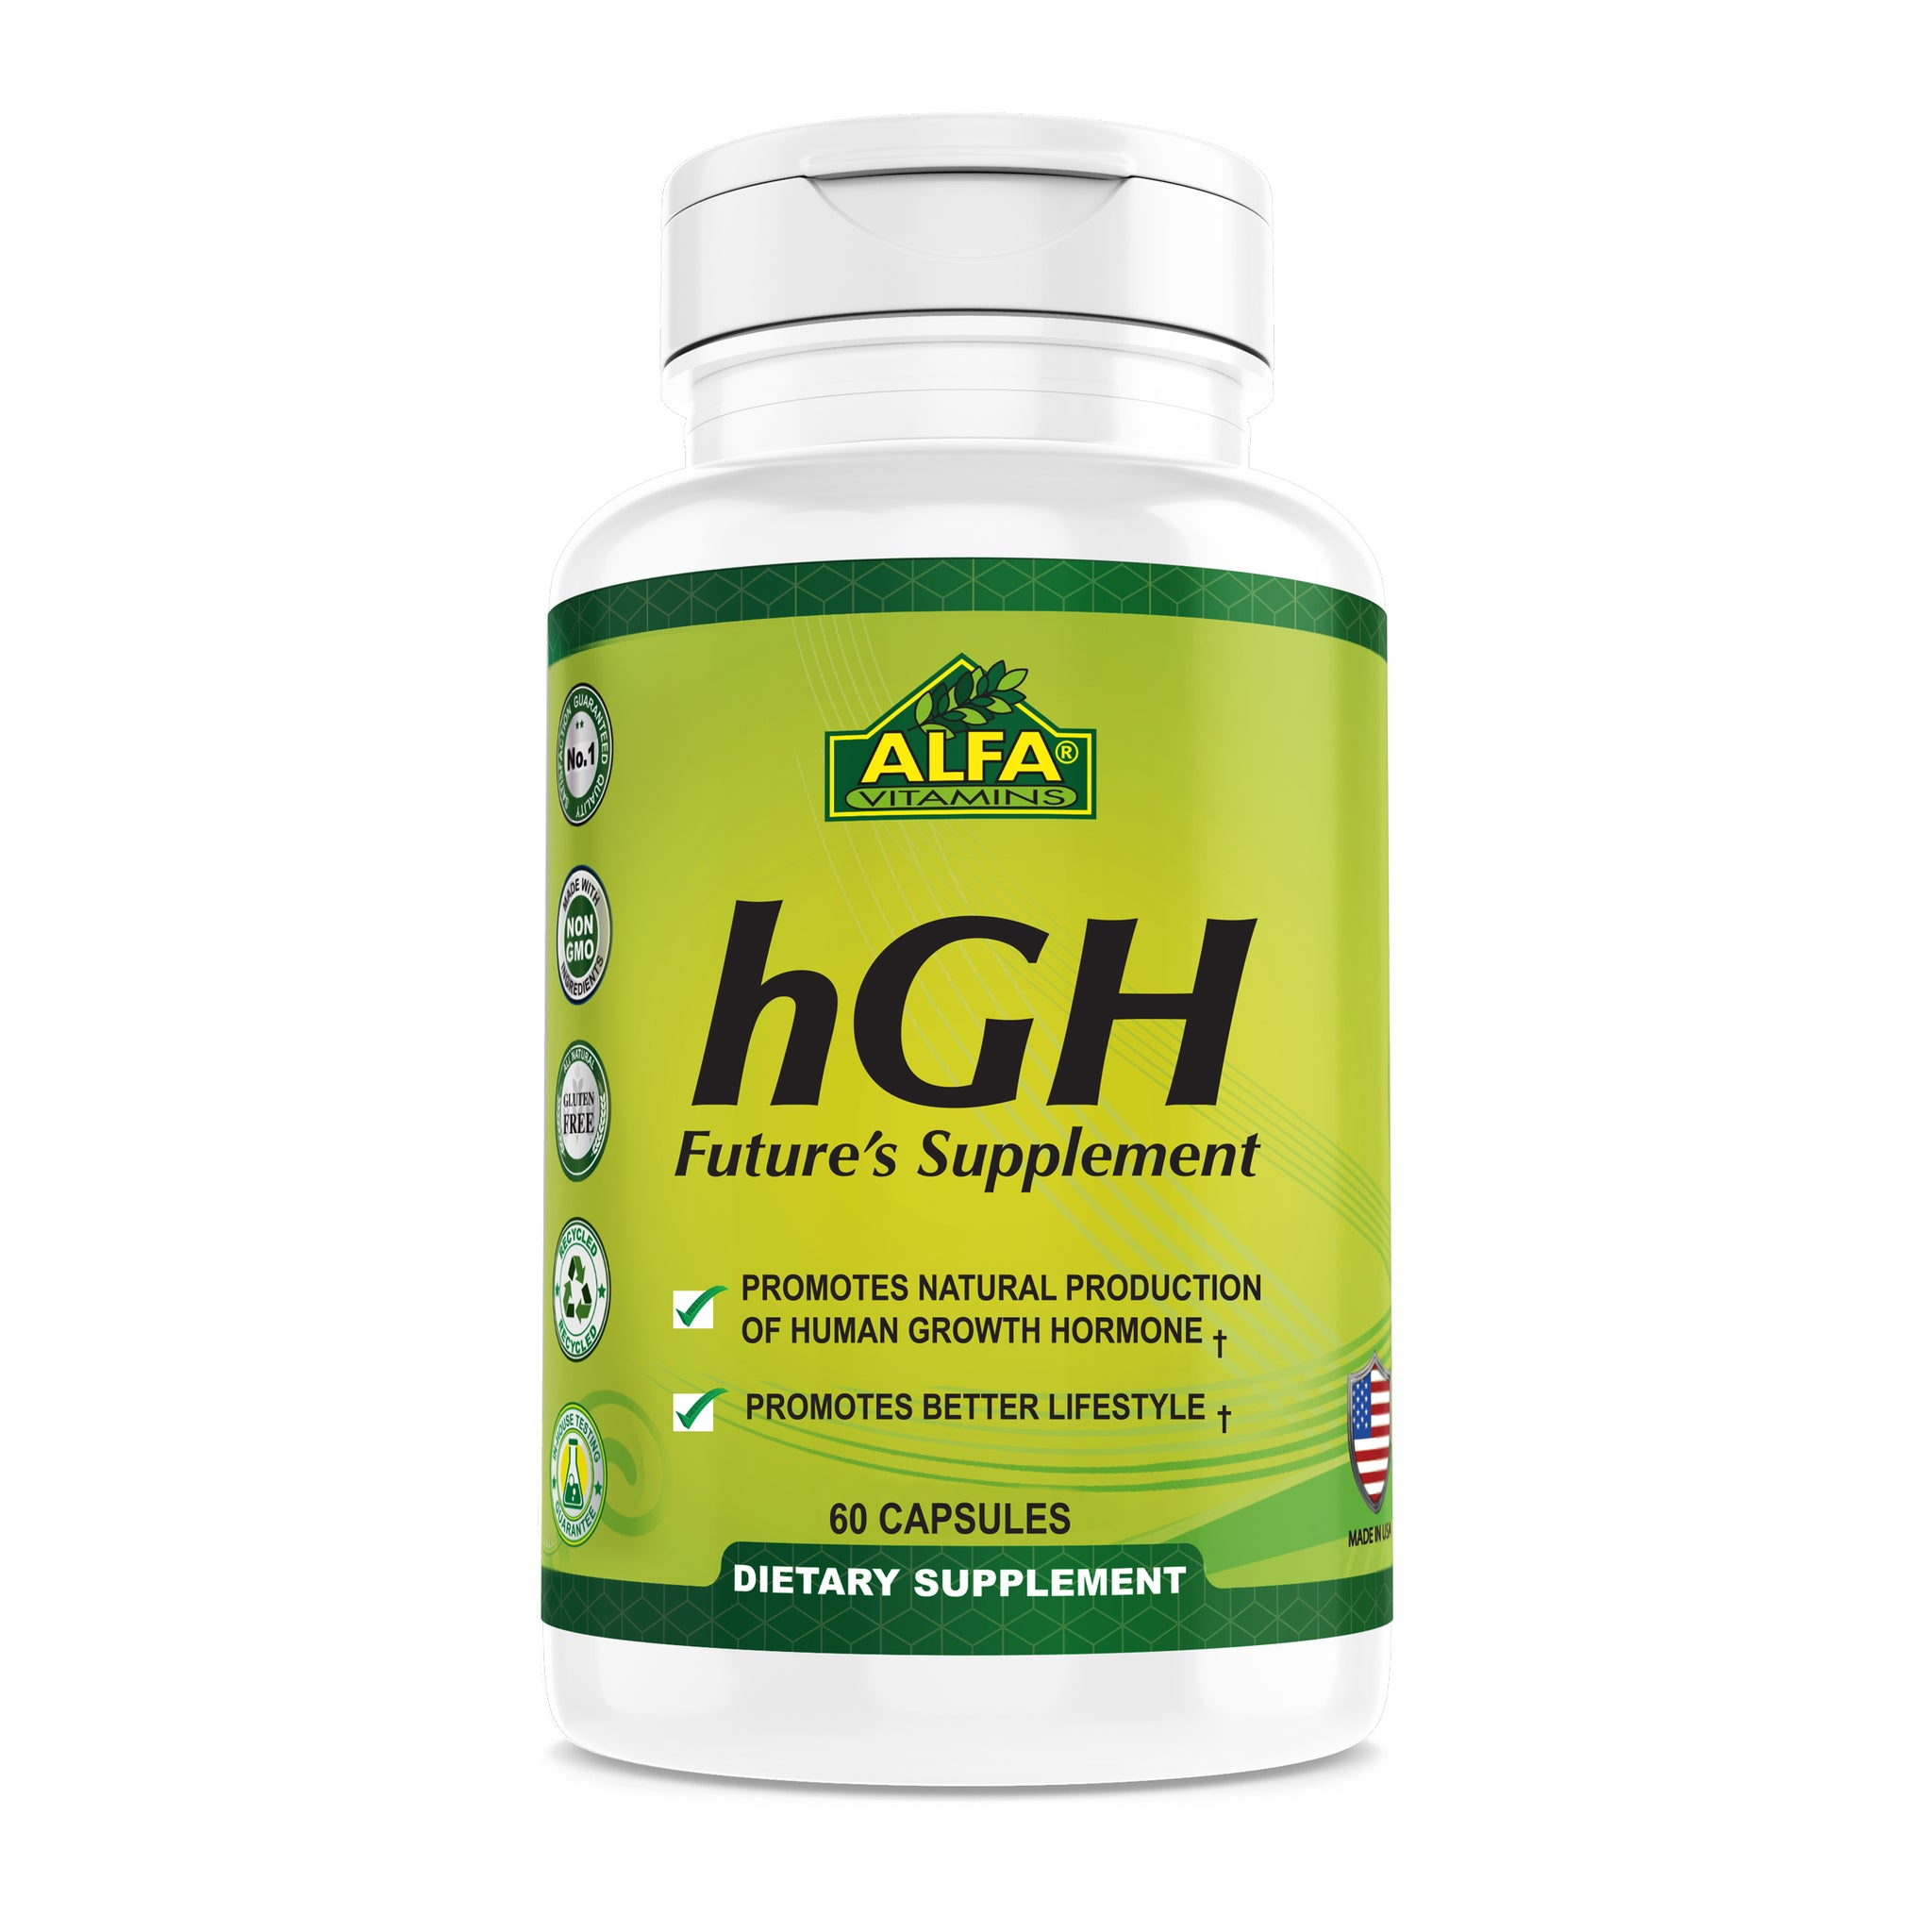 HGH Pills - Human Growth Hormone - Chewable Tablets